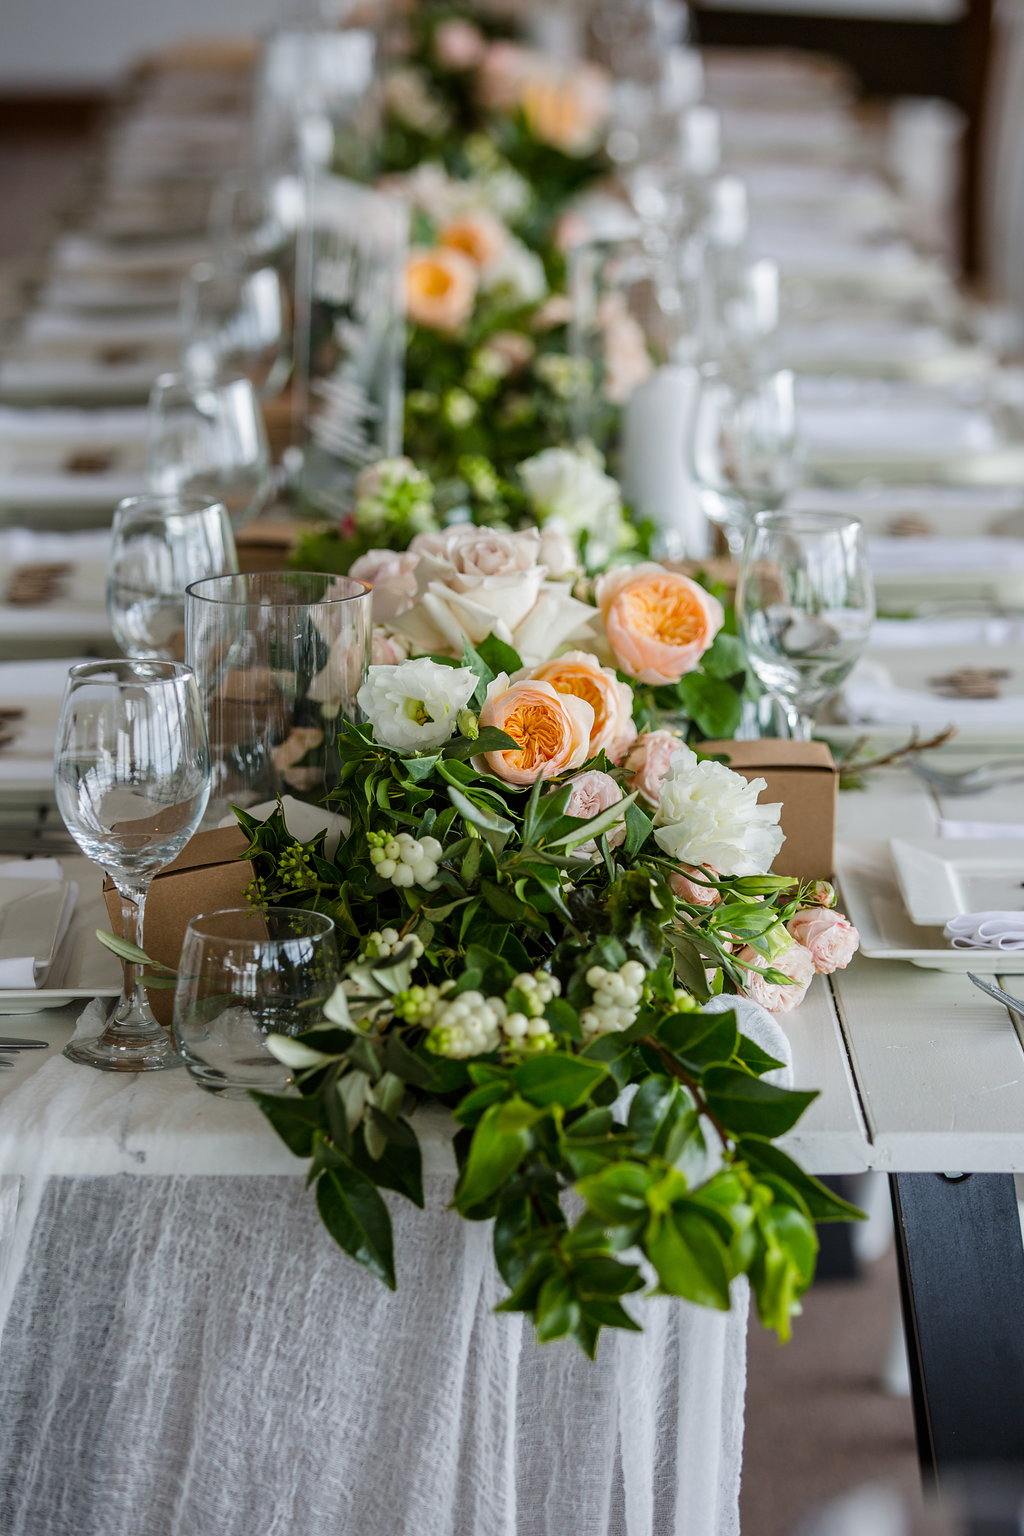 Reception table garlands with lush greenery and pastel blooms